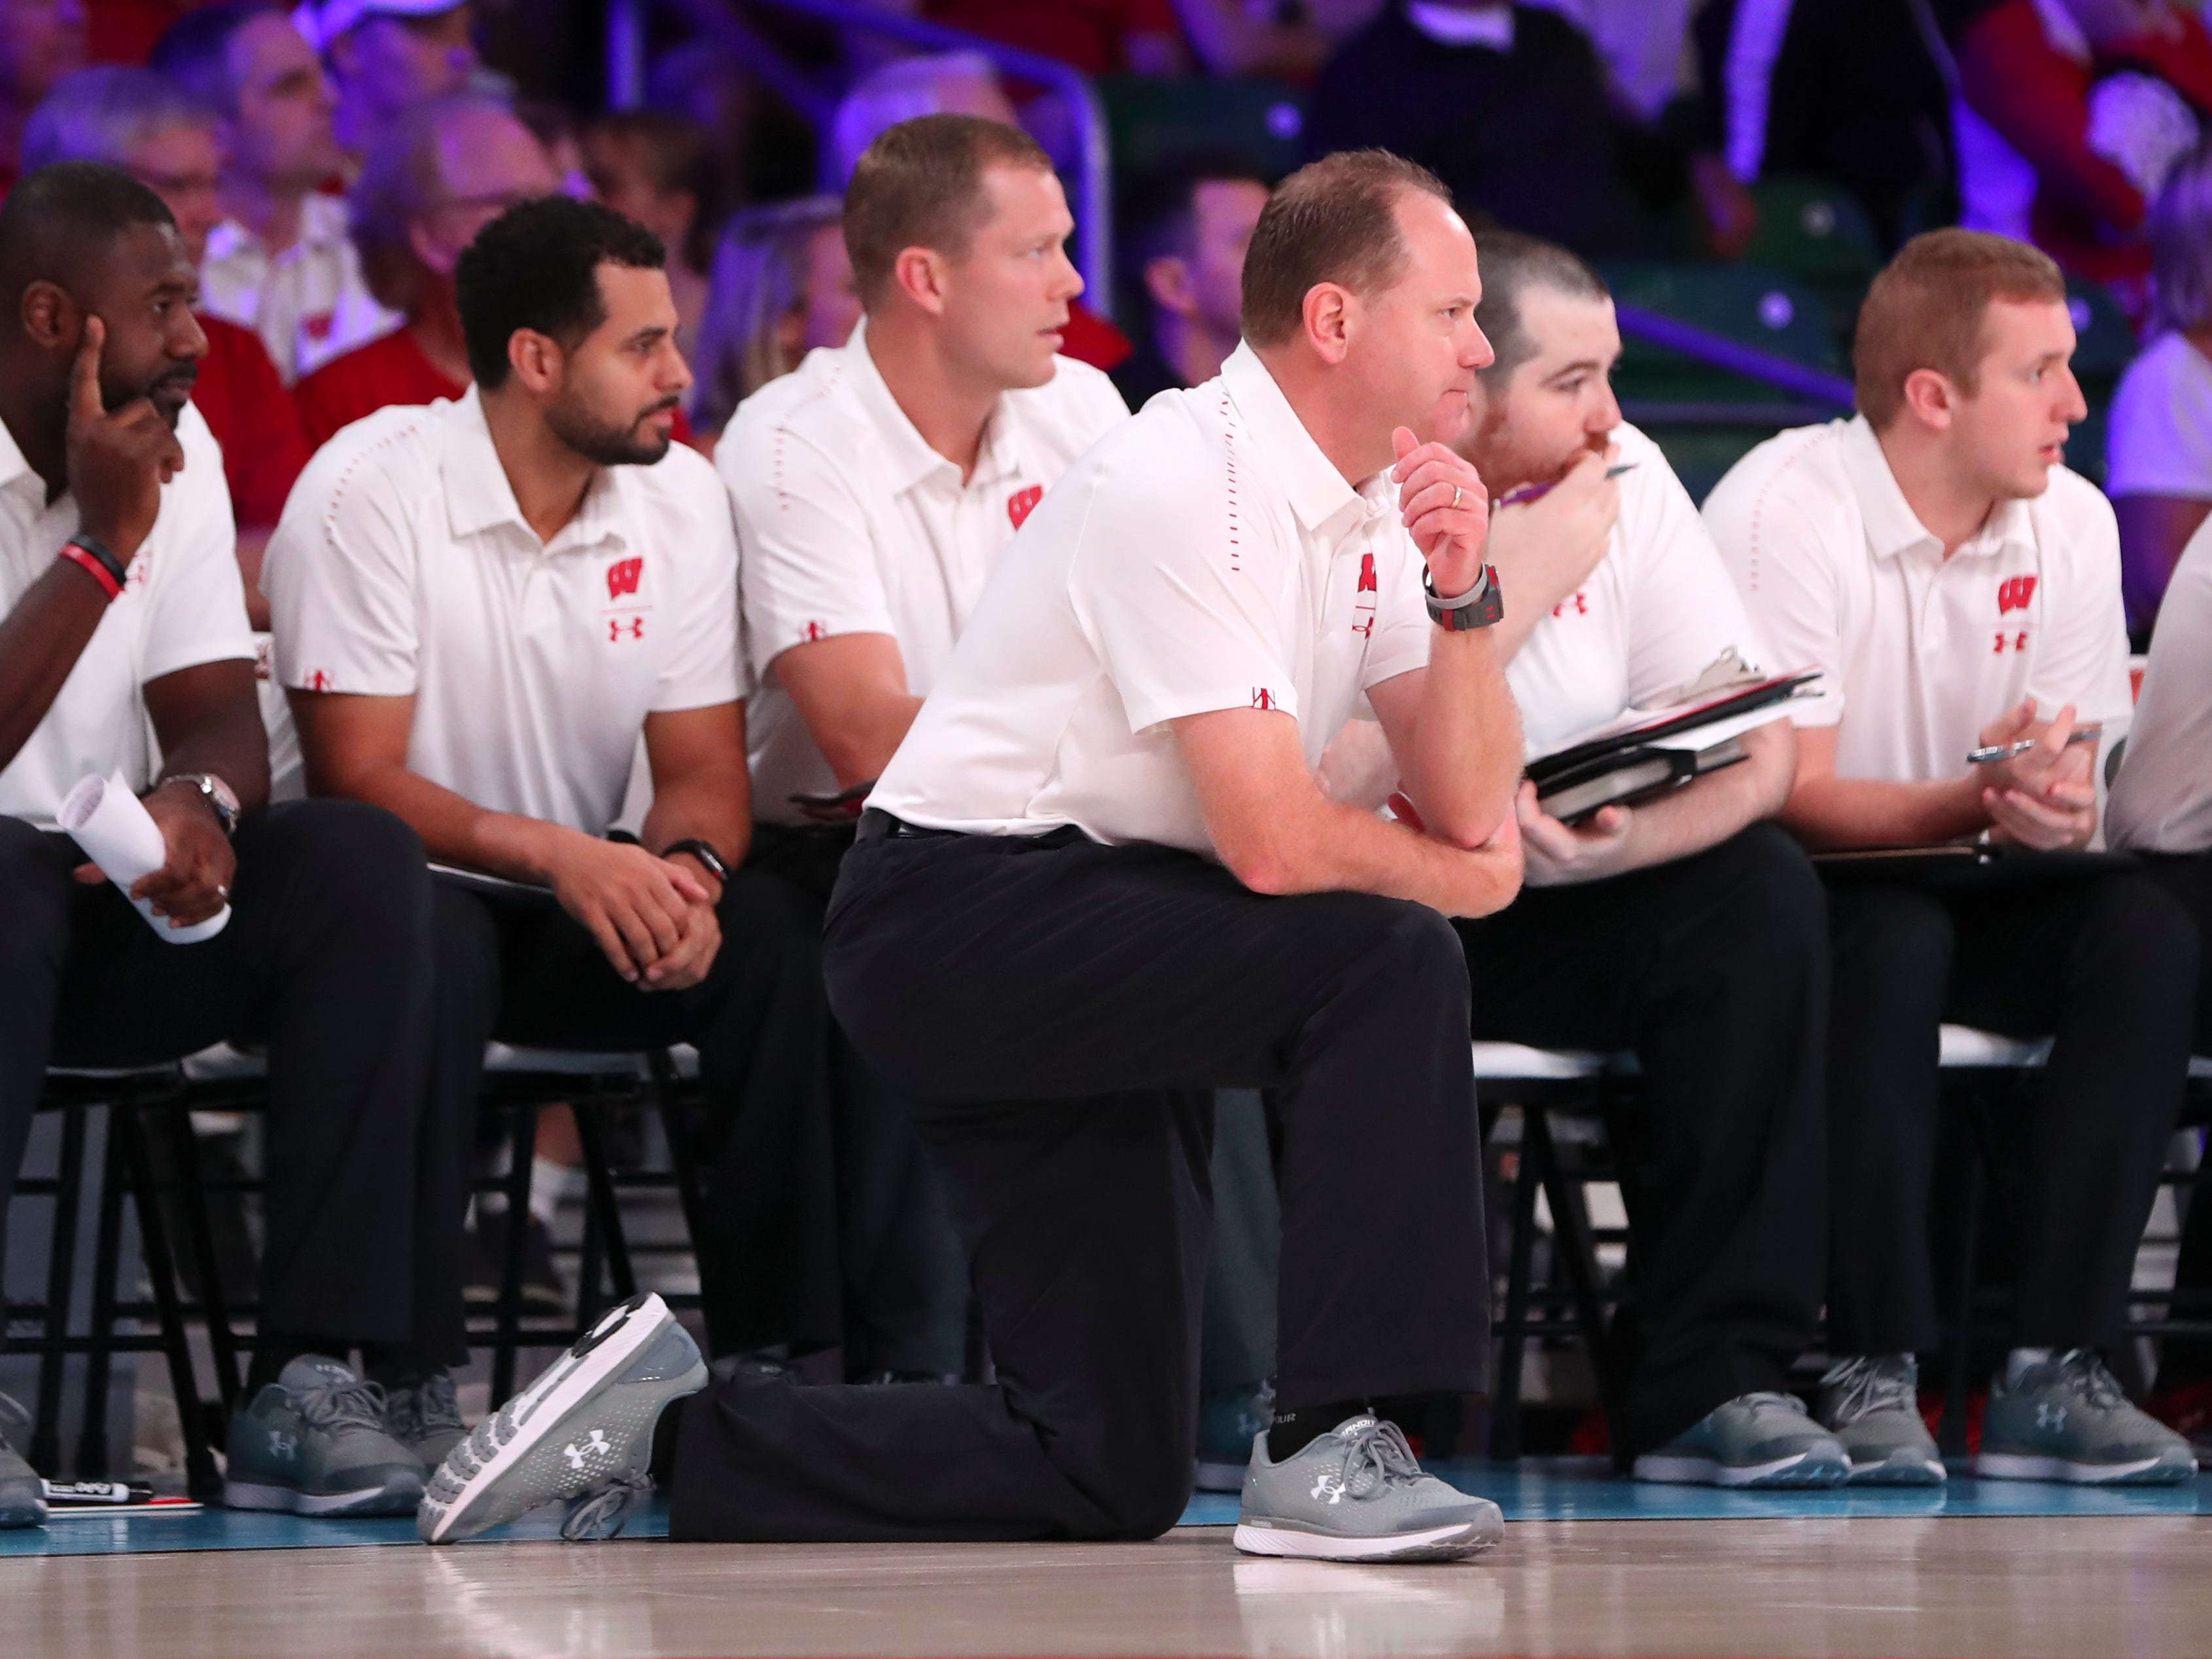 Badgers head coach Greg Gard watches his team.